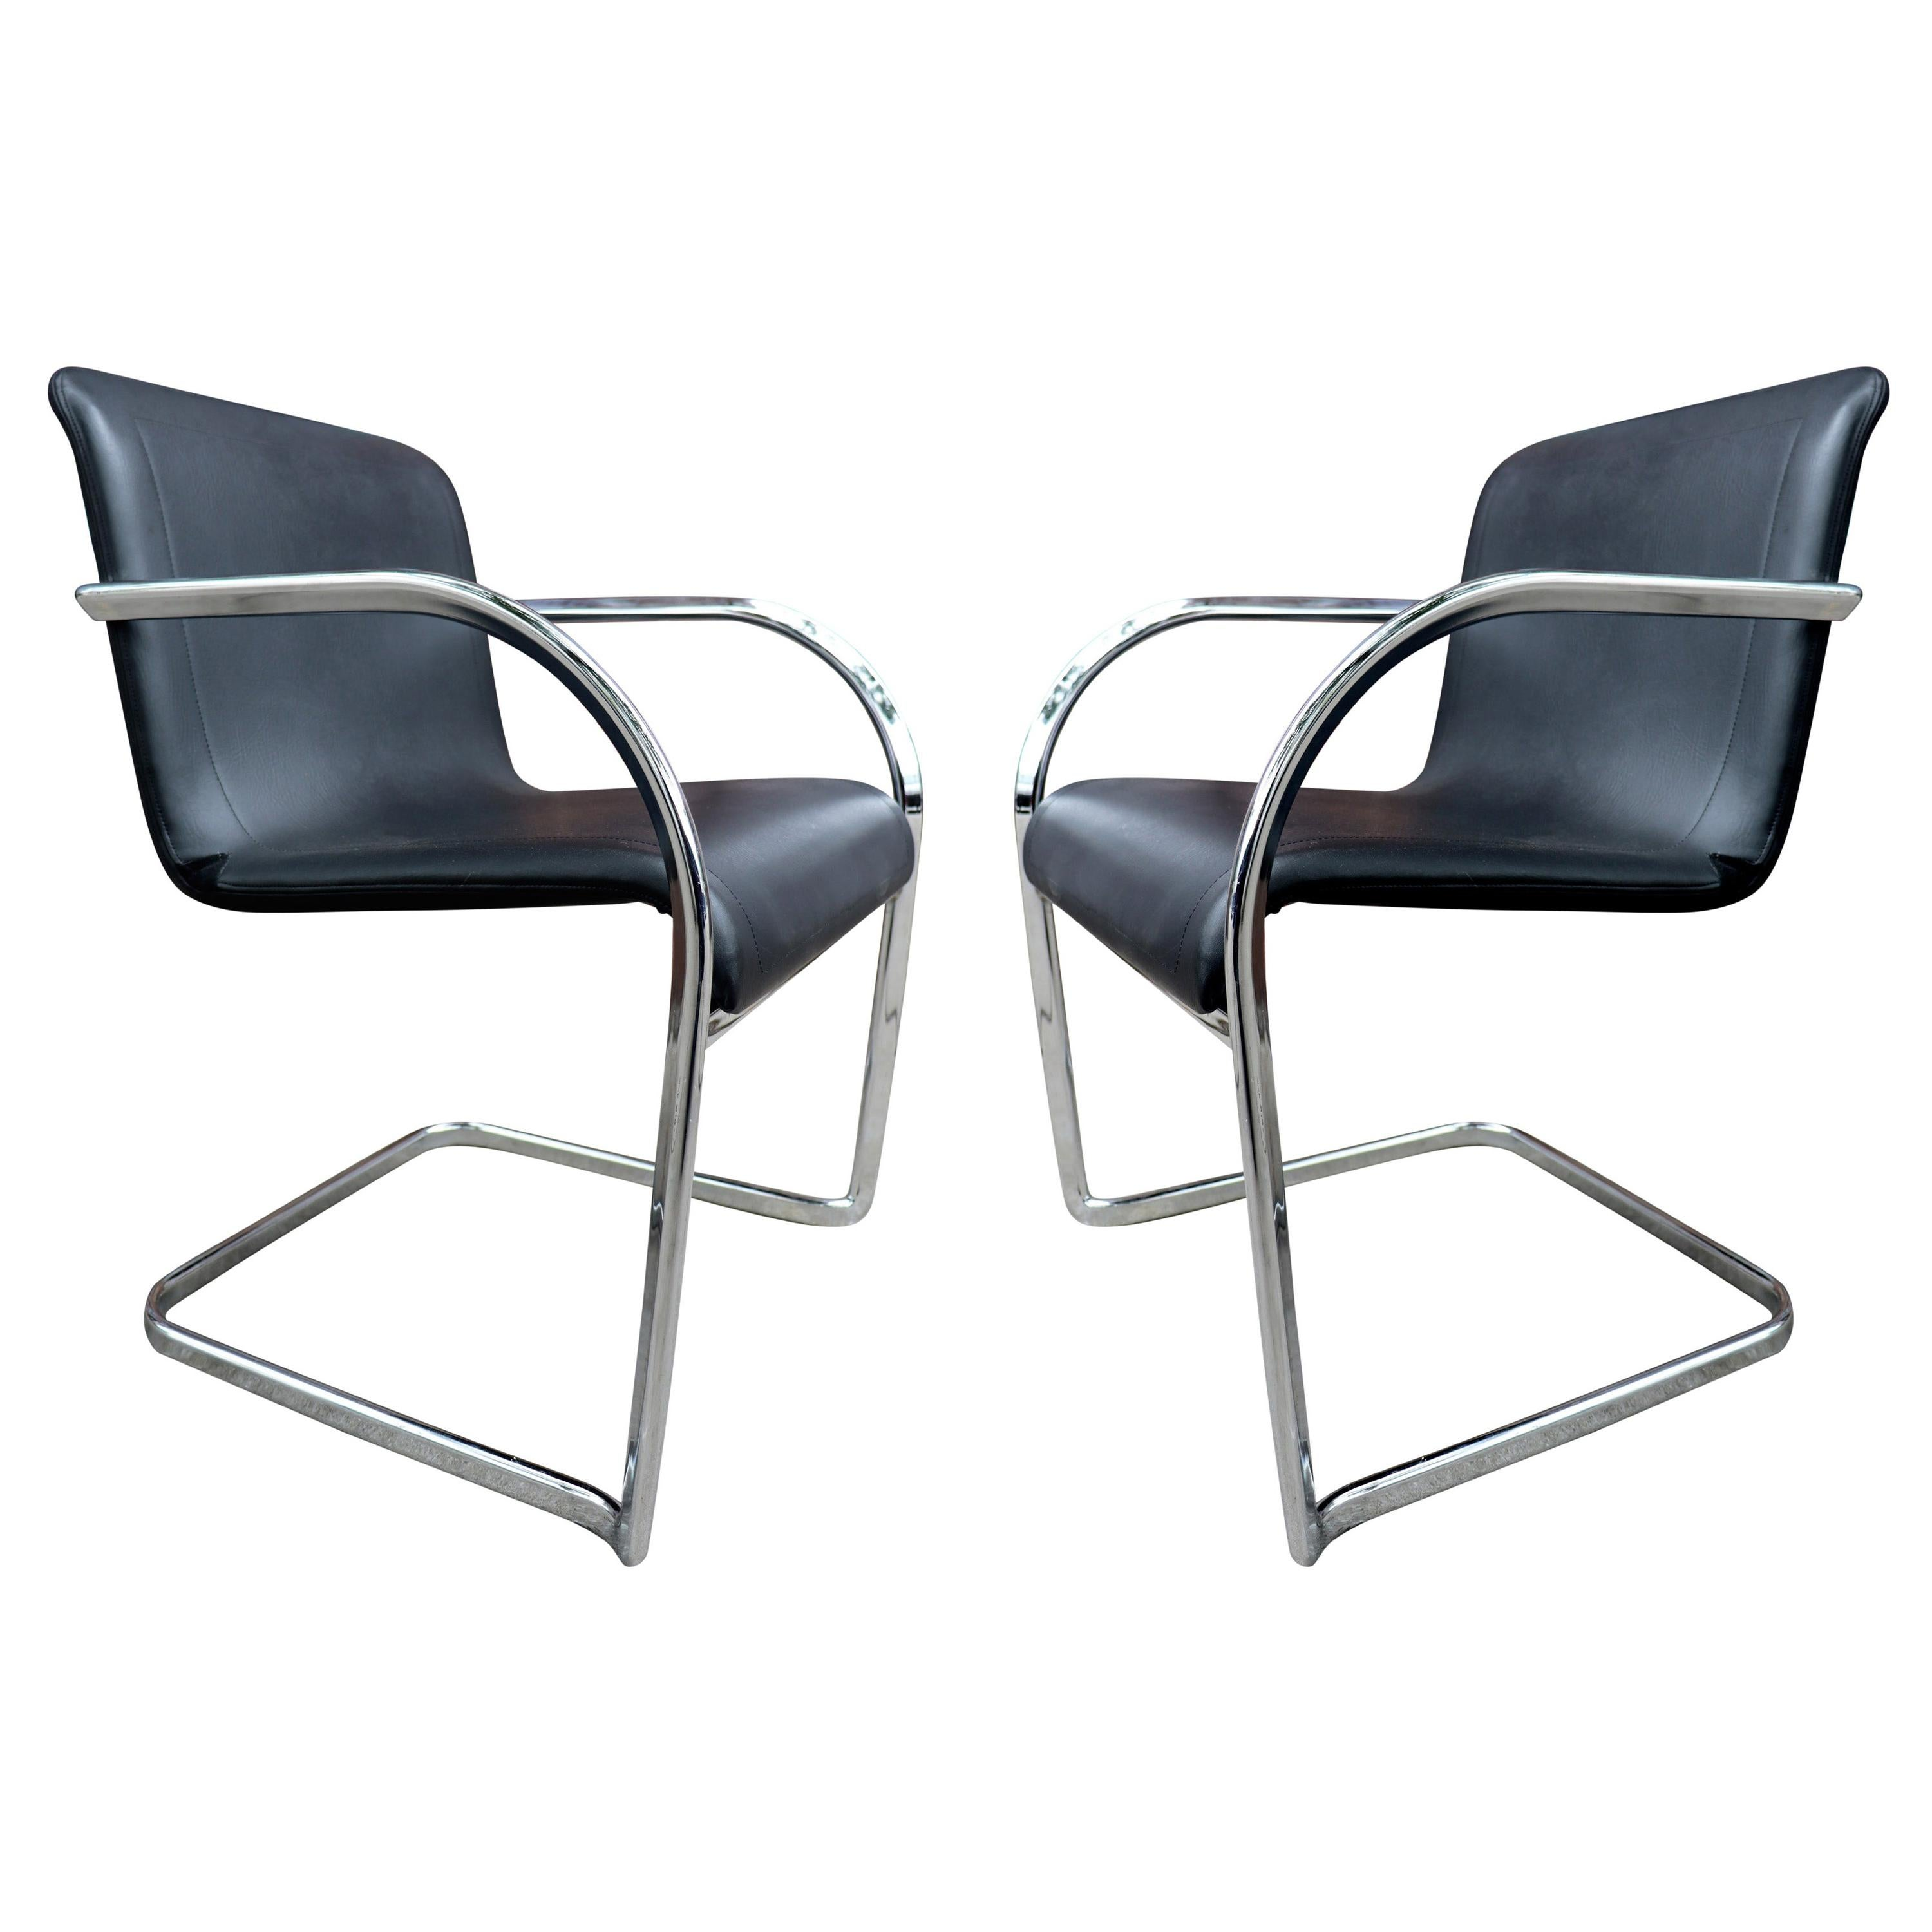 Thonet Cantilever Lounge Chairs in Chrome by Anton Lorenz